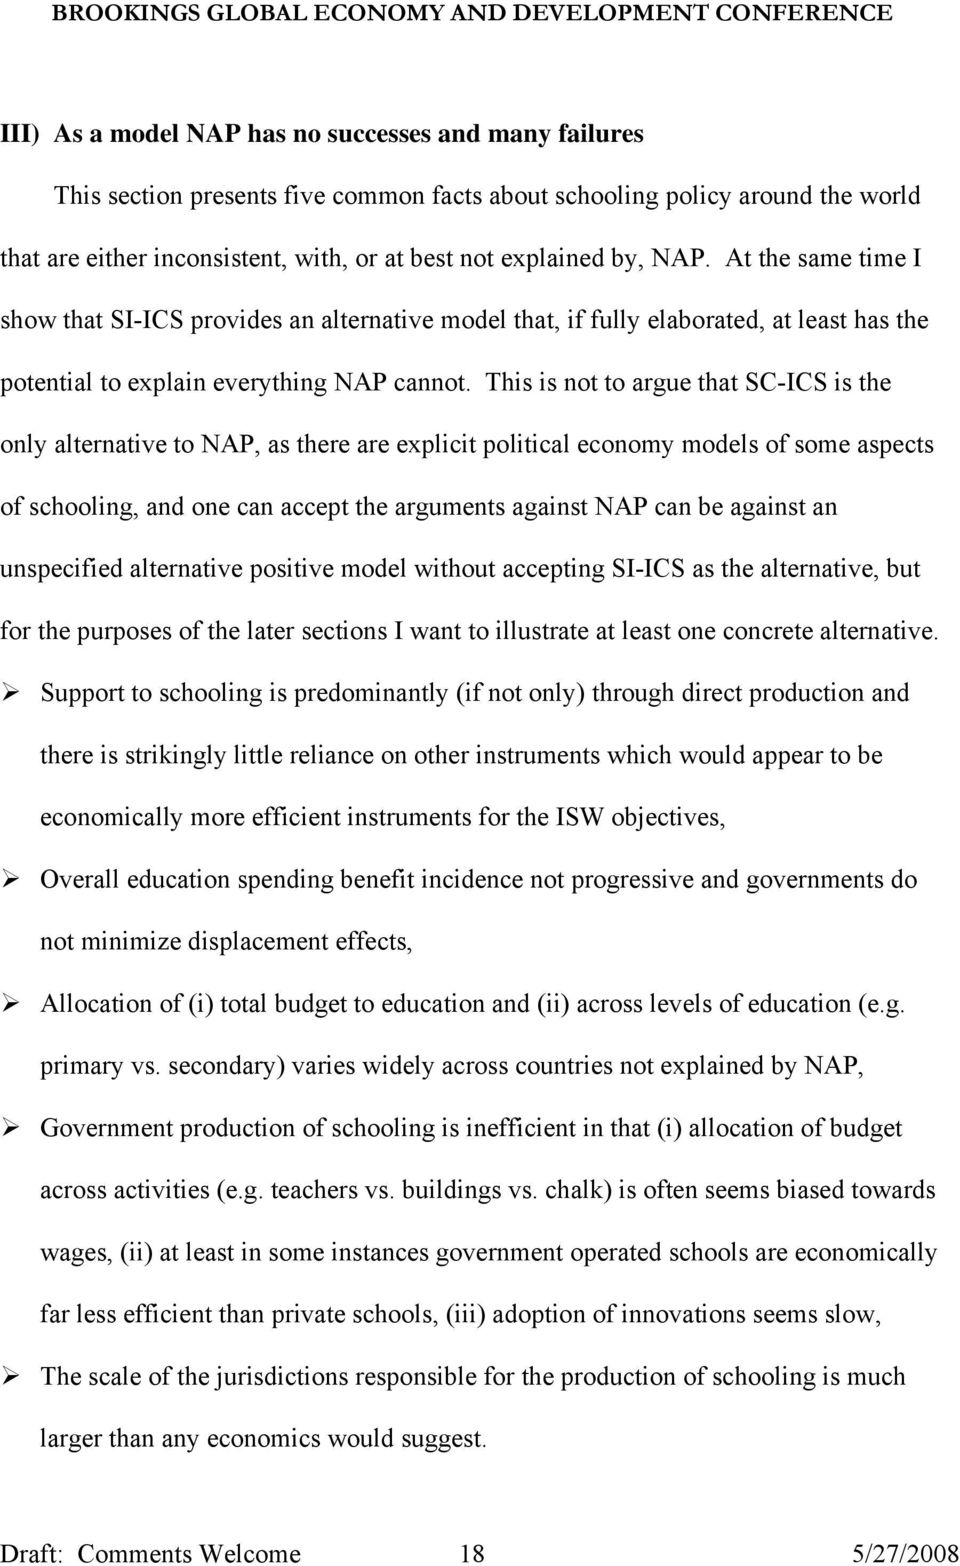 This is not to argue that SC-ICS is the only alternative to NAP, as there are explicit political economy models of some aspects of schooling, and one can accept the arguments against NAP can be